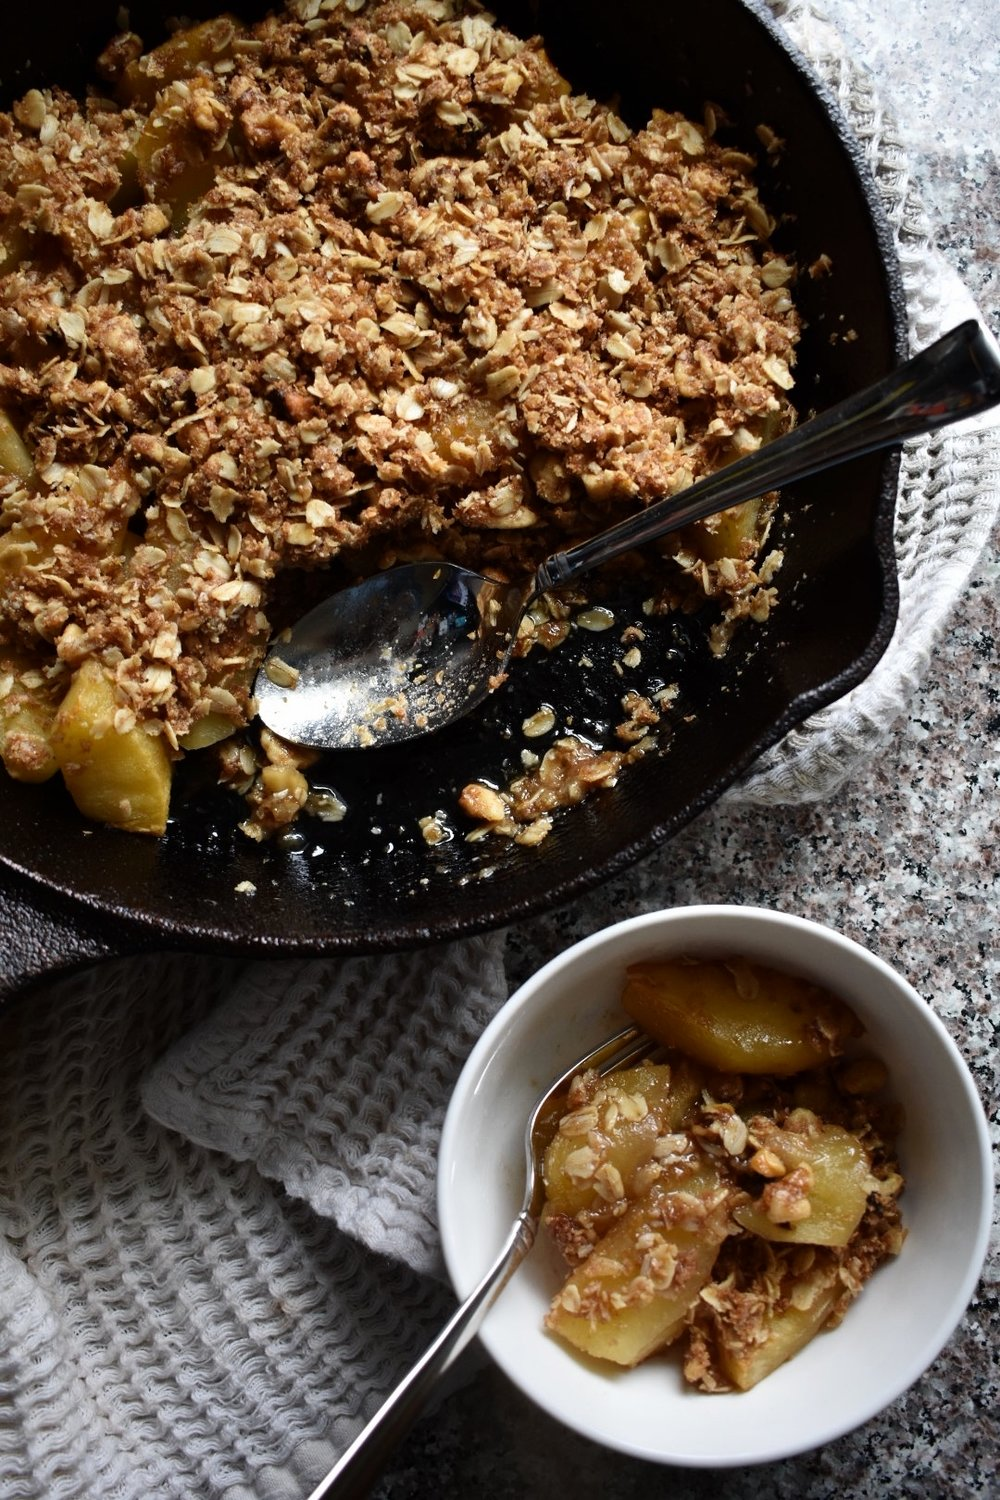 Breakfast-Worthy Apple Crisp